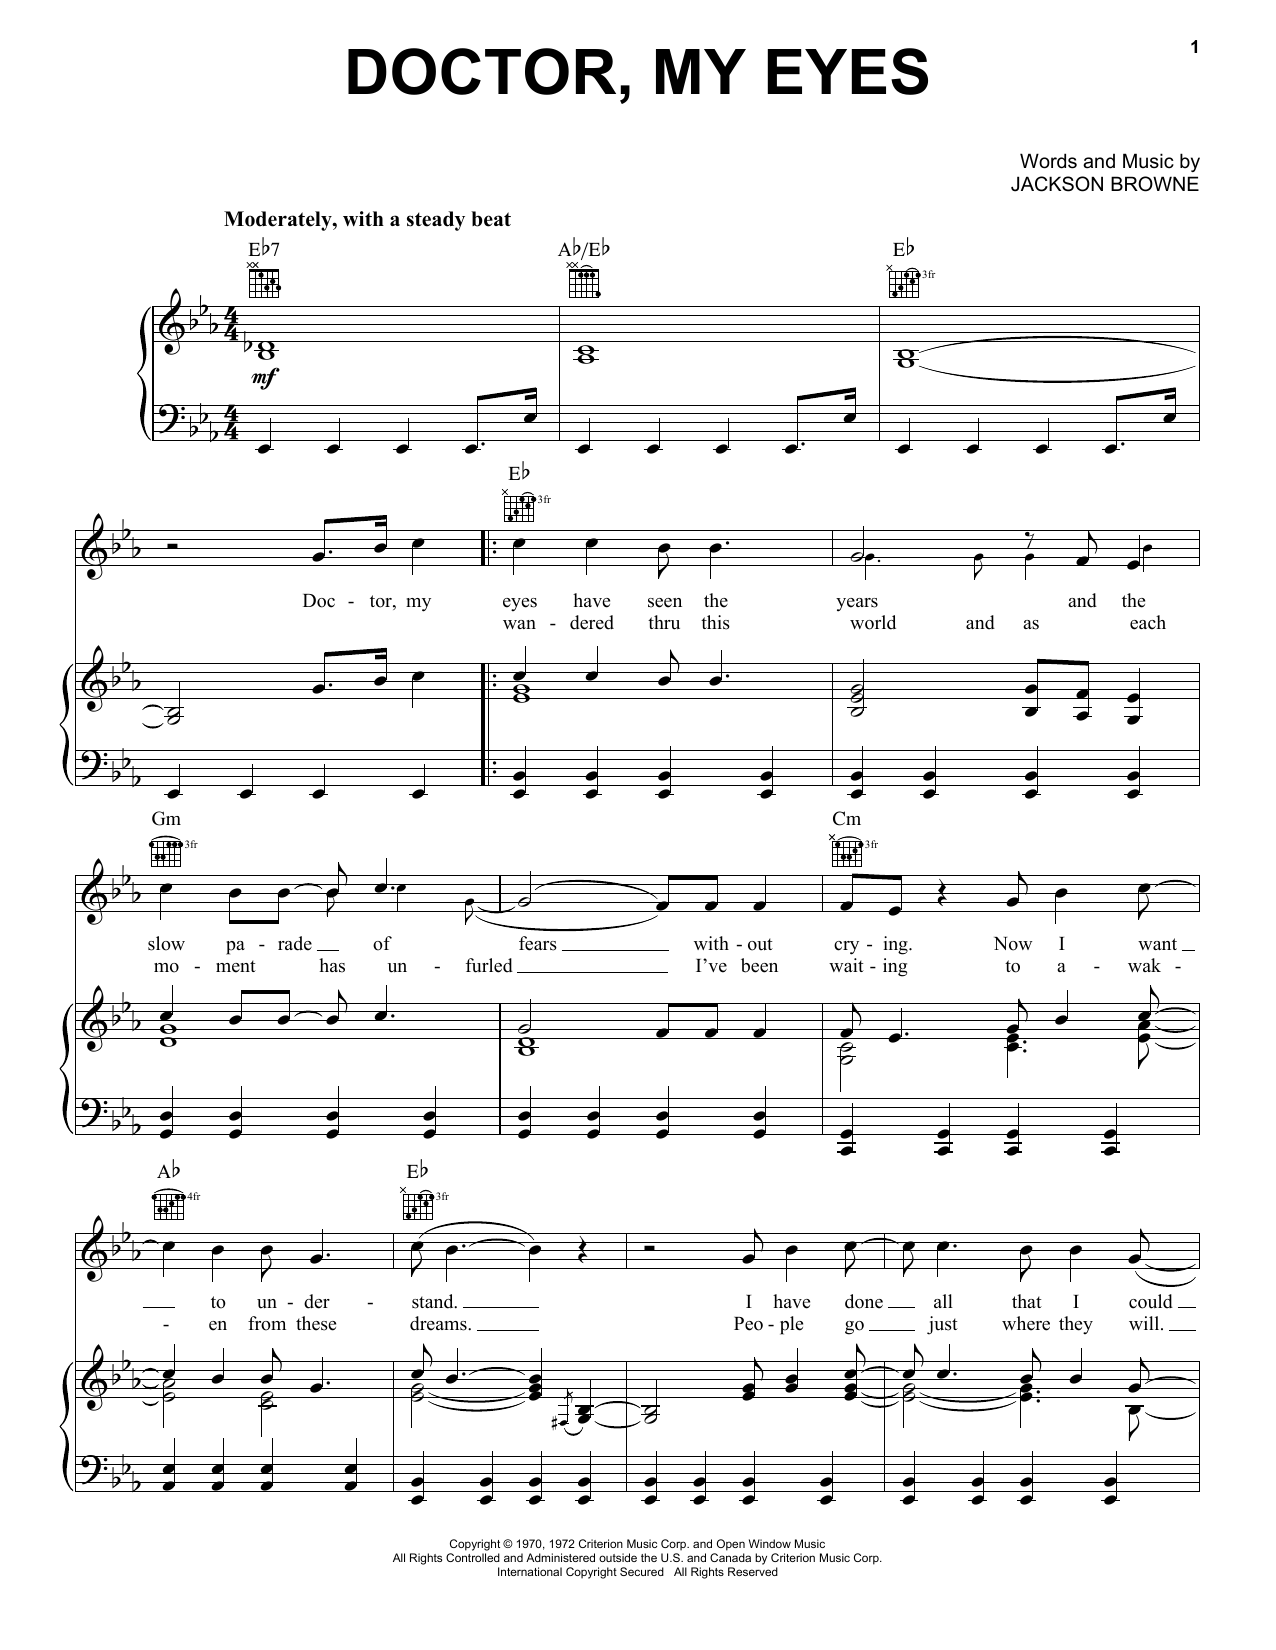 Jackson Browne Doctor, My Eyes sheet music notes and chords. Download Printable PDF.